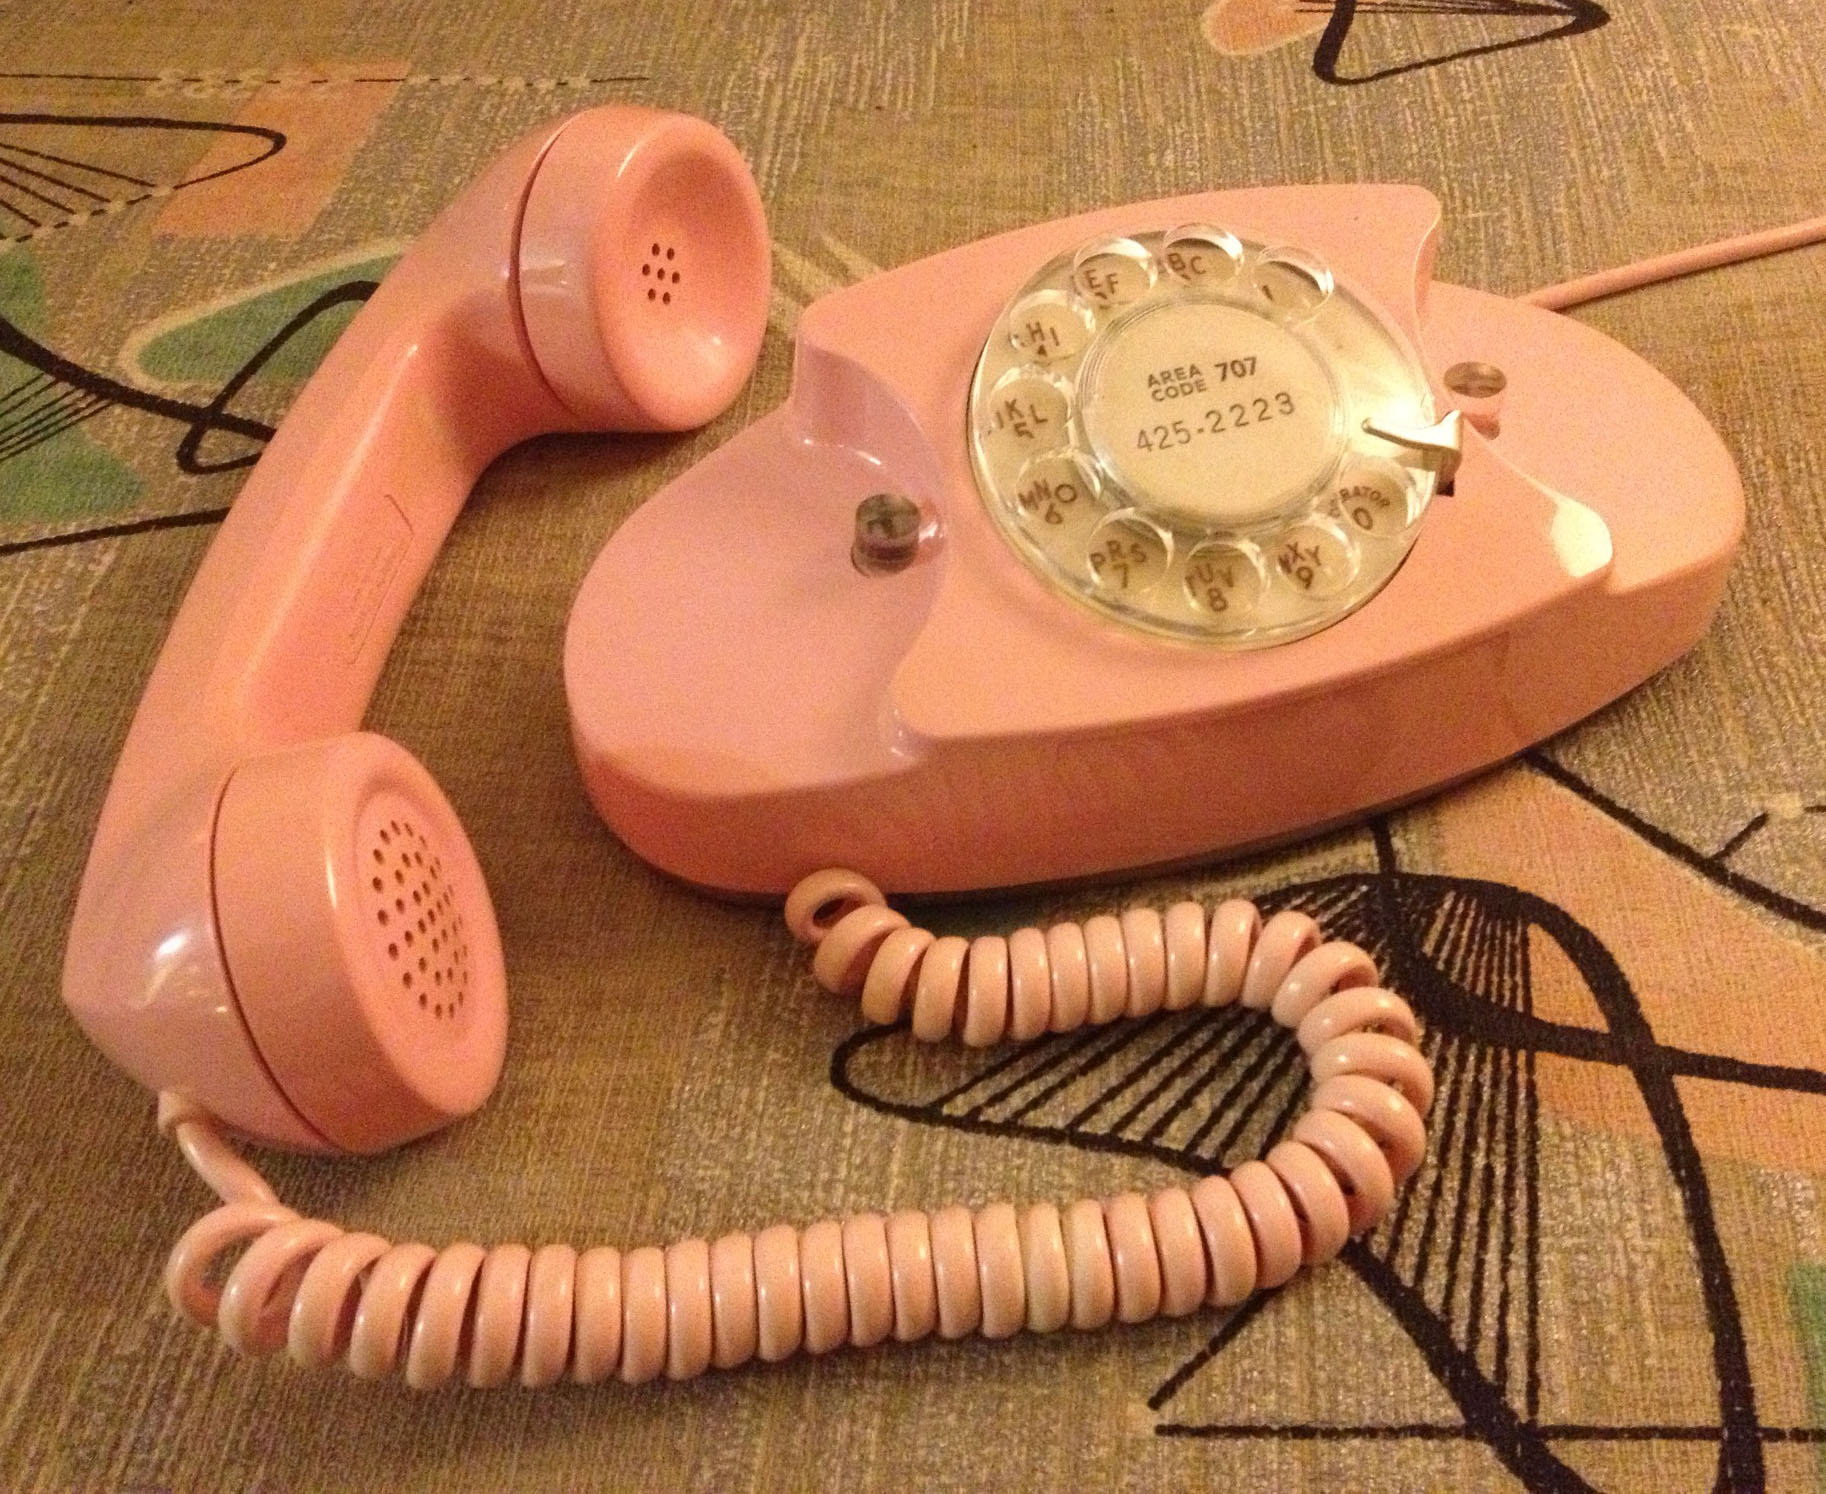 Bell Princess phone